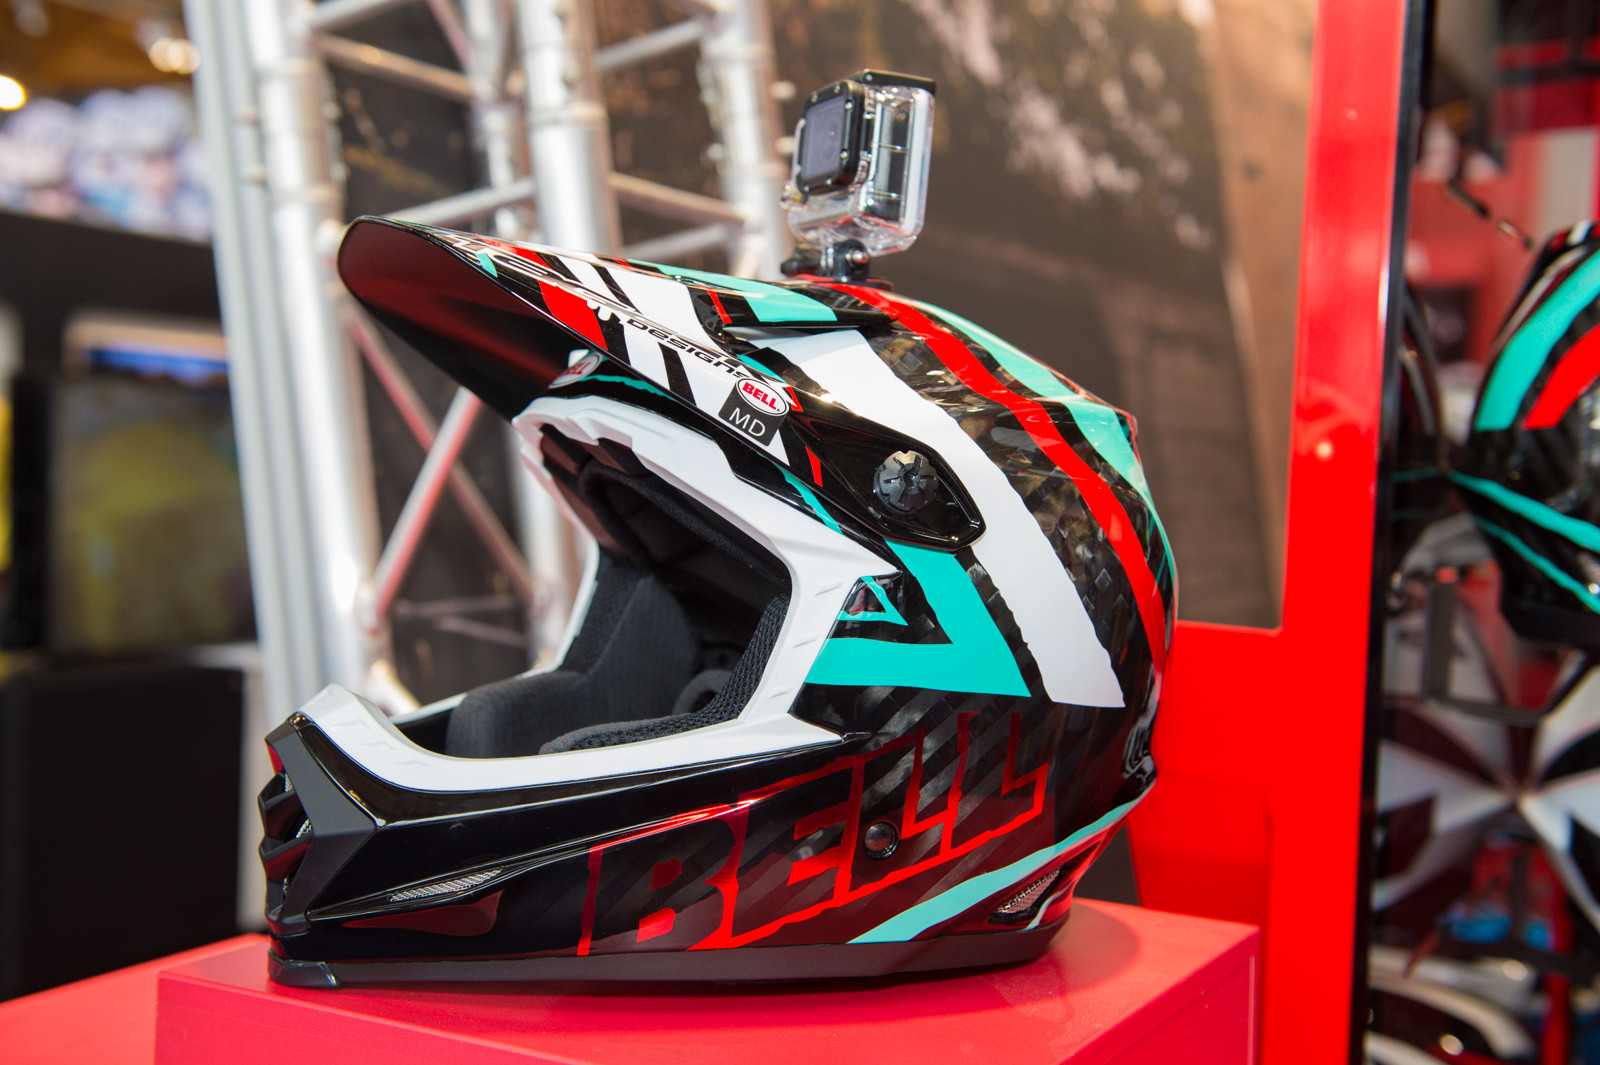 Fresh Color for the Bell Full-9 Helmet - 2014 Mountain Bike Apparel & Protection at Eurobike 2013 - Mountain Biking Pictures - Vital MTB